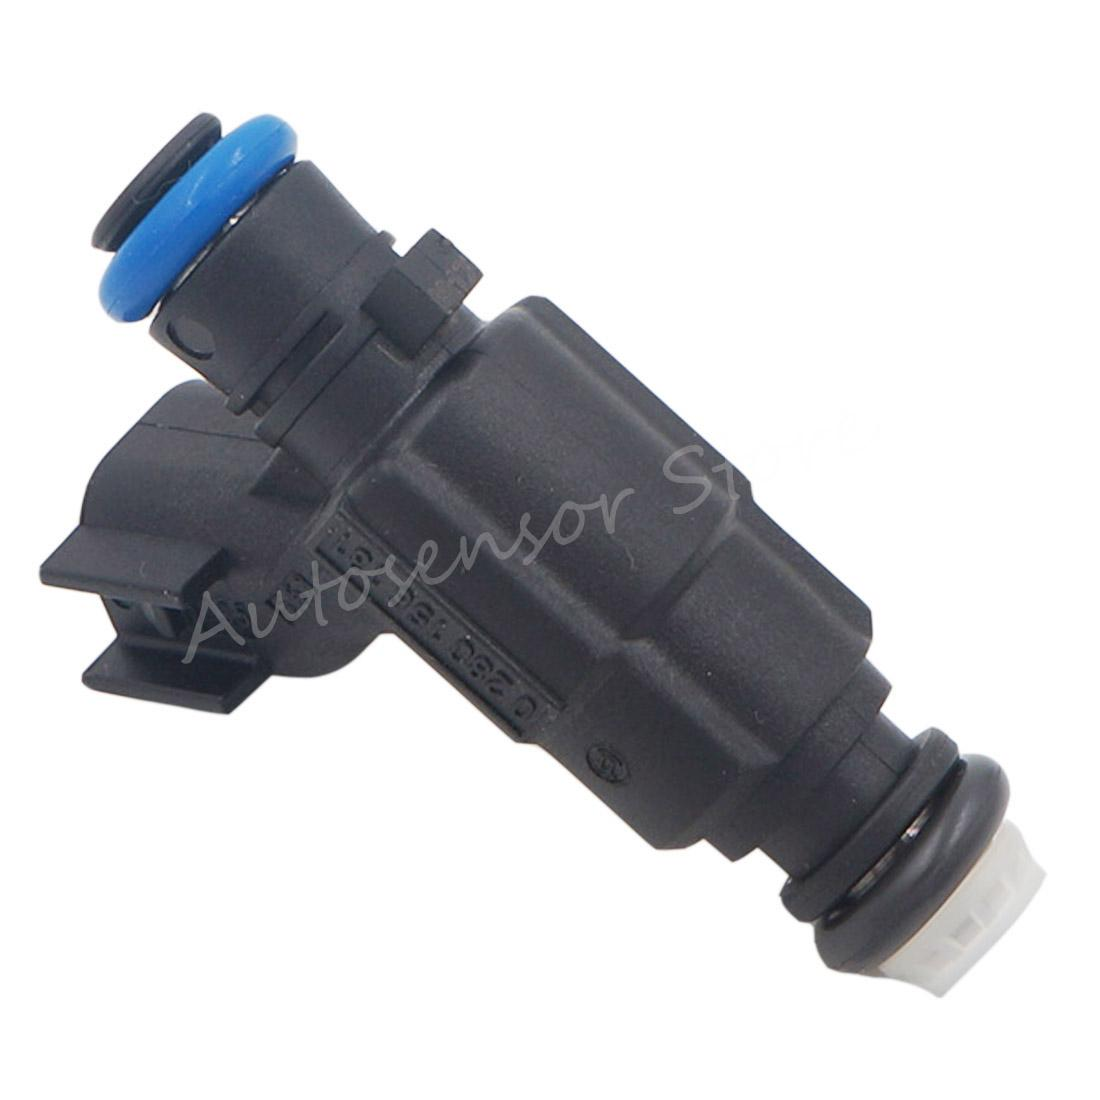 High Quality 0280156131 Fuel Injector Nozzle For BUICK 2004-2008 3.6L V6 12571159 0 280 156 131